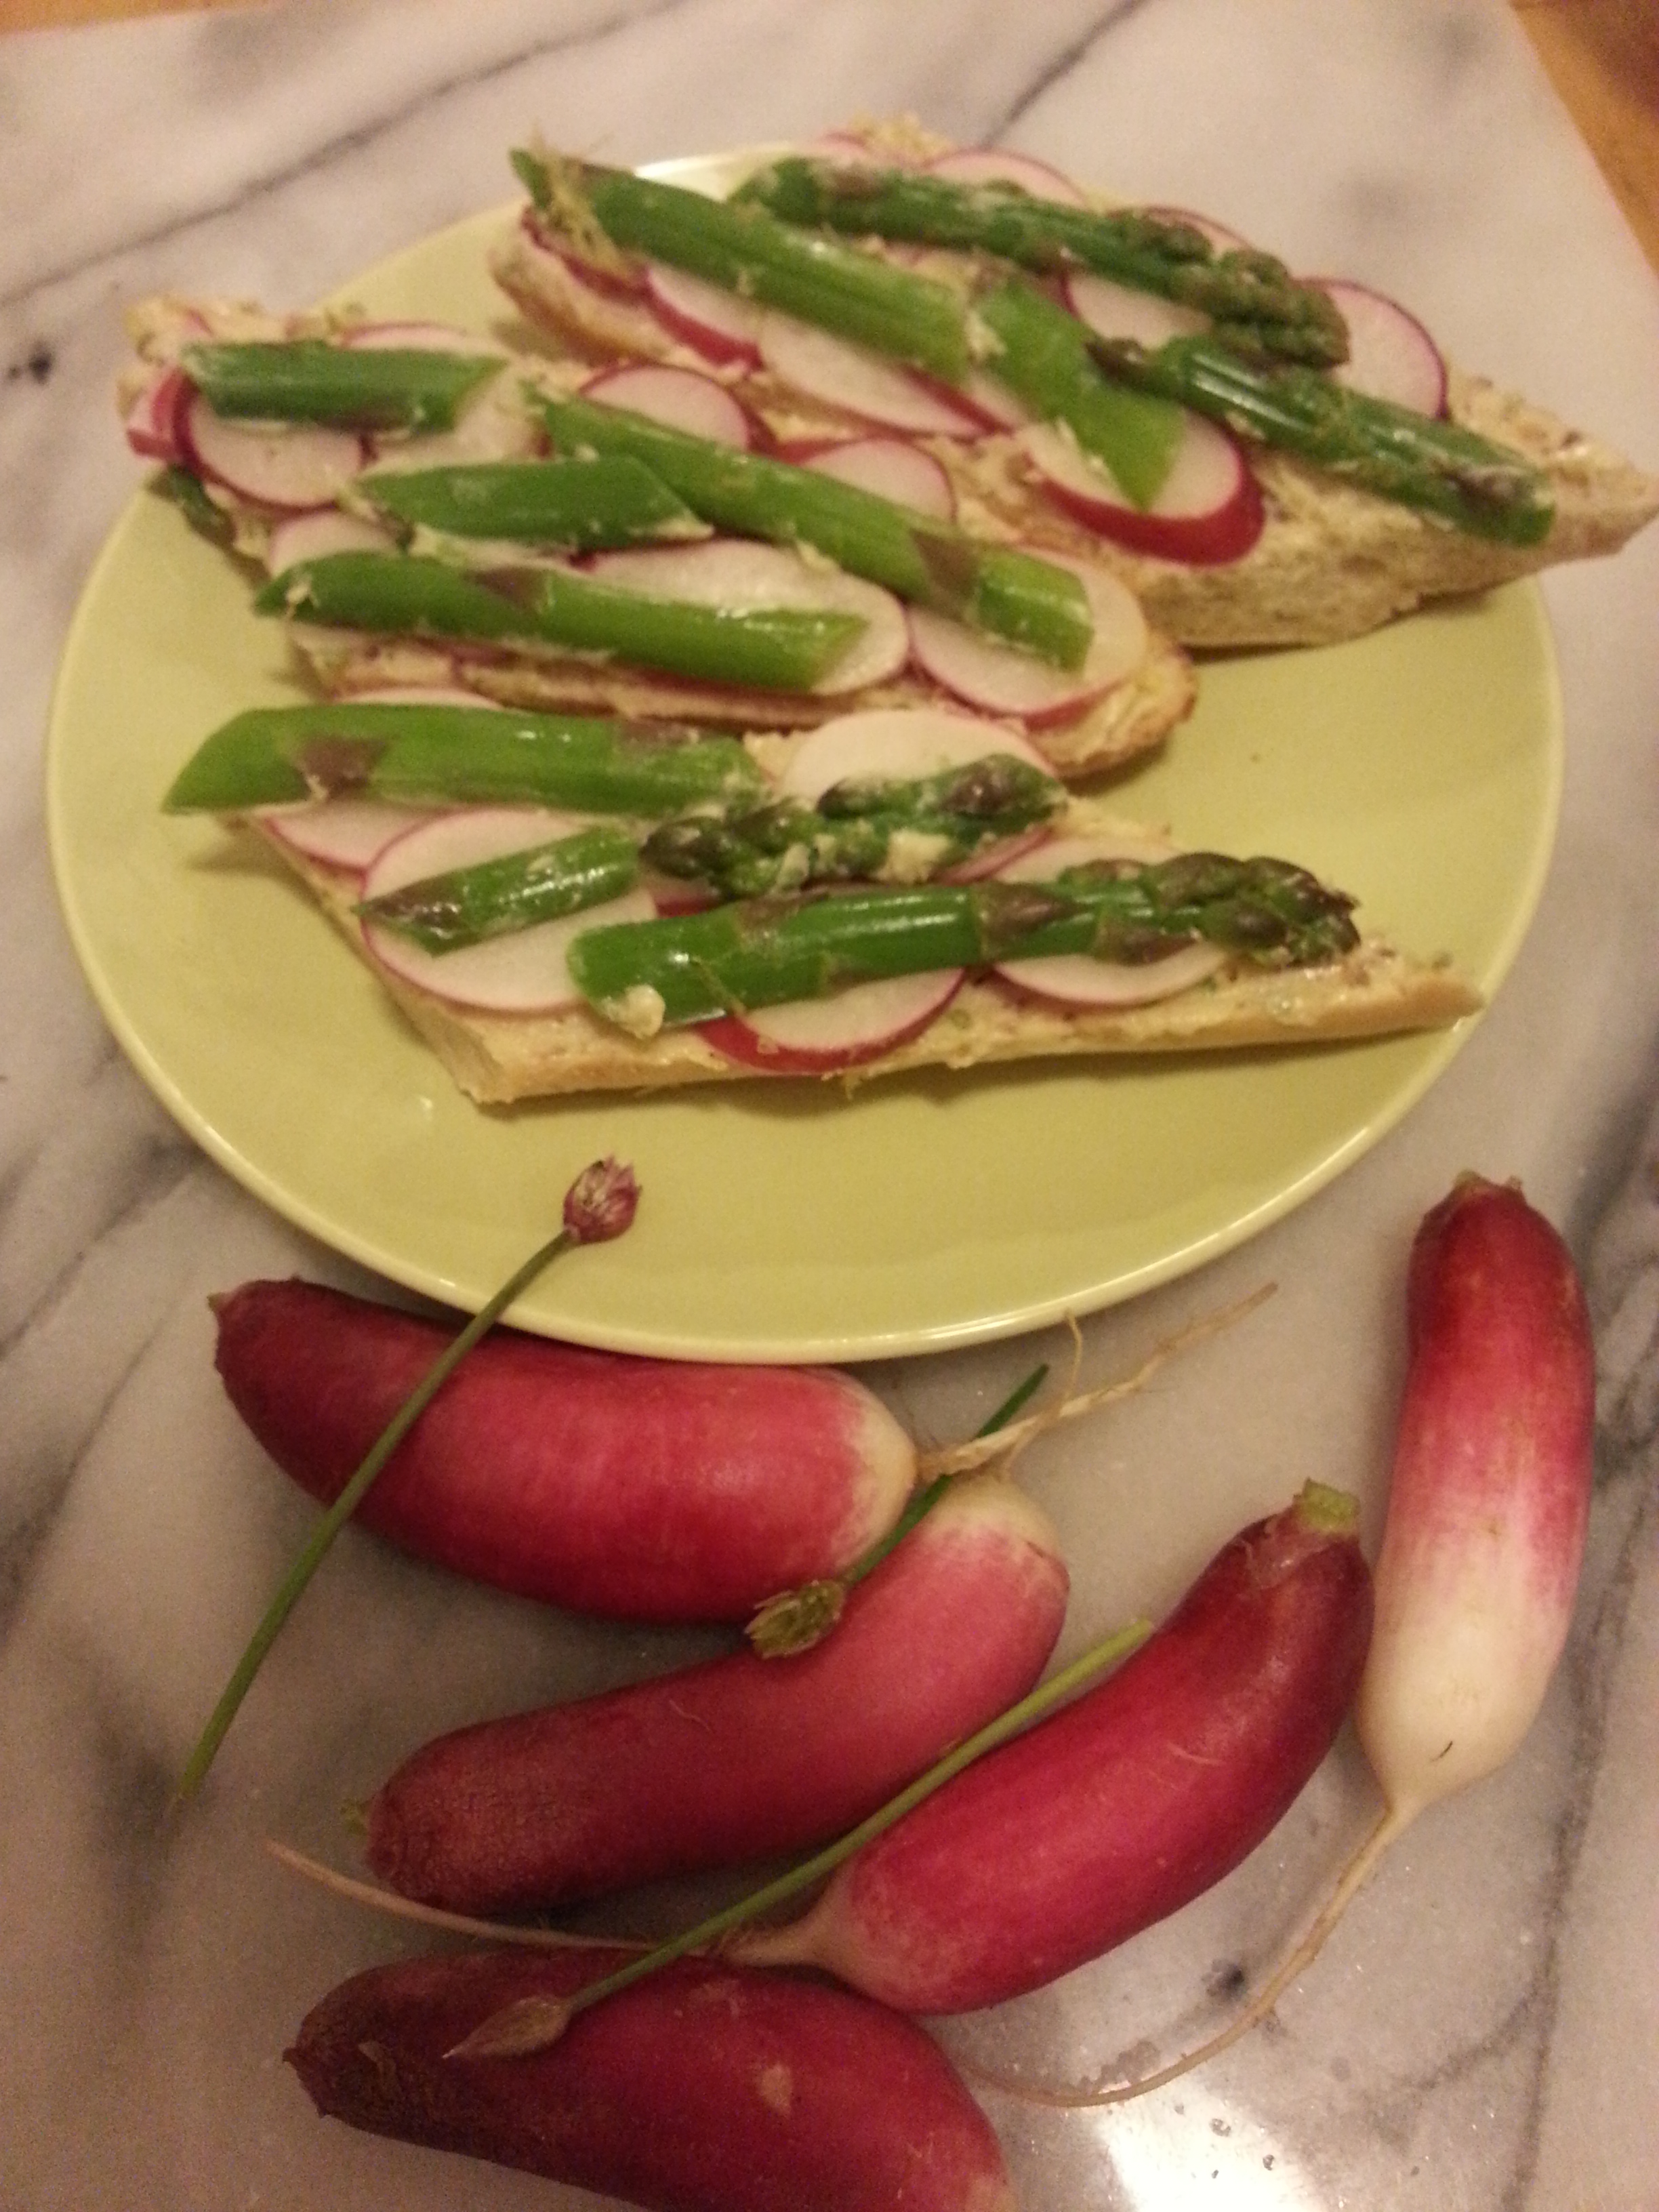 ... and Cool- Baguette with Radishes, Asparagus, and Chive-Anchovy Butter